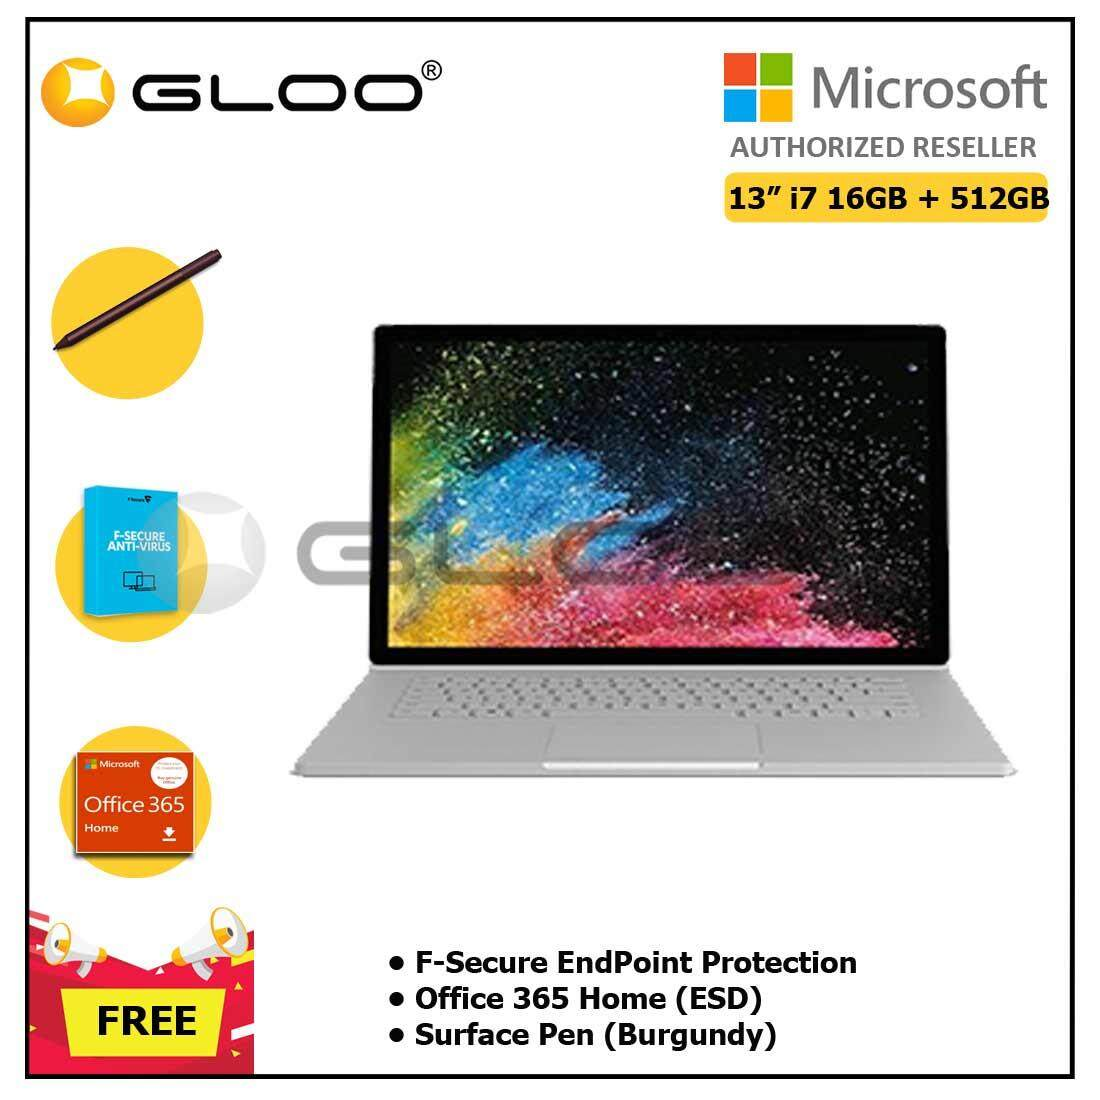 """Microsoft Surface Book 2 13"""" i7/16GB 512GB + F-Secure EndPoint Protection + Office 365 Home ESD + Pen Burgundy"""